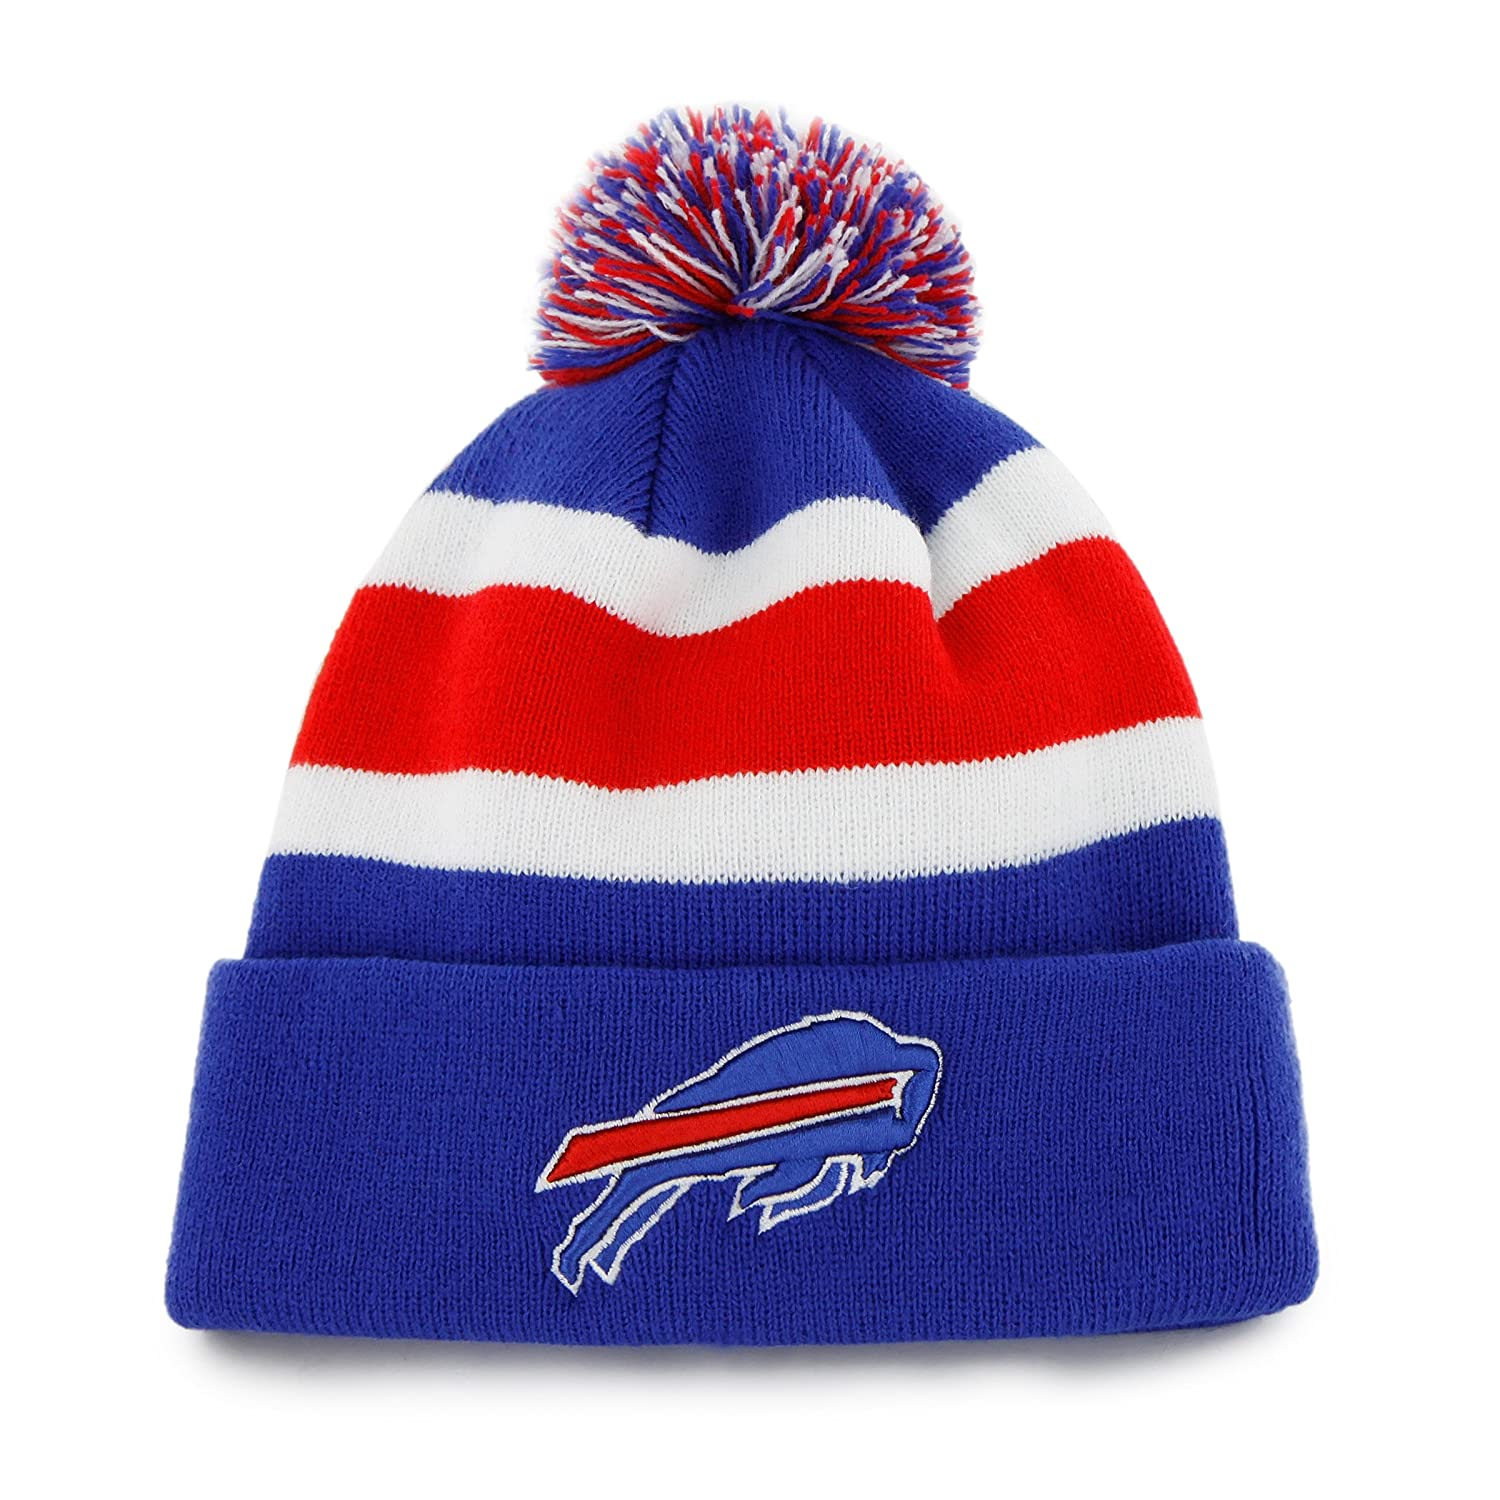 6847a89d3 Amazon.com : NFL Buffalo Bills Men's Breakaway Knit Cap, One Size, Sonic  Blue : Sports Fan Baseball Caps : Clothing